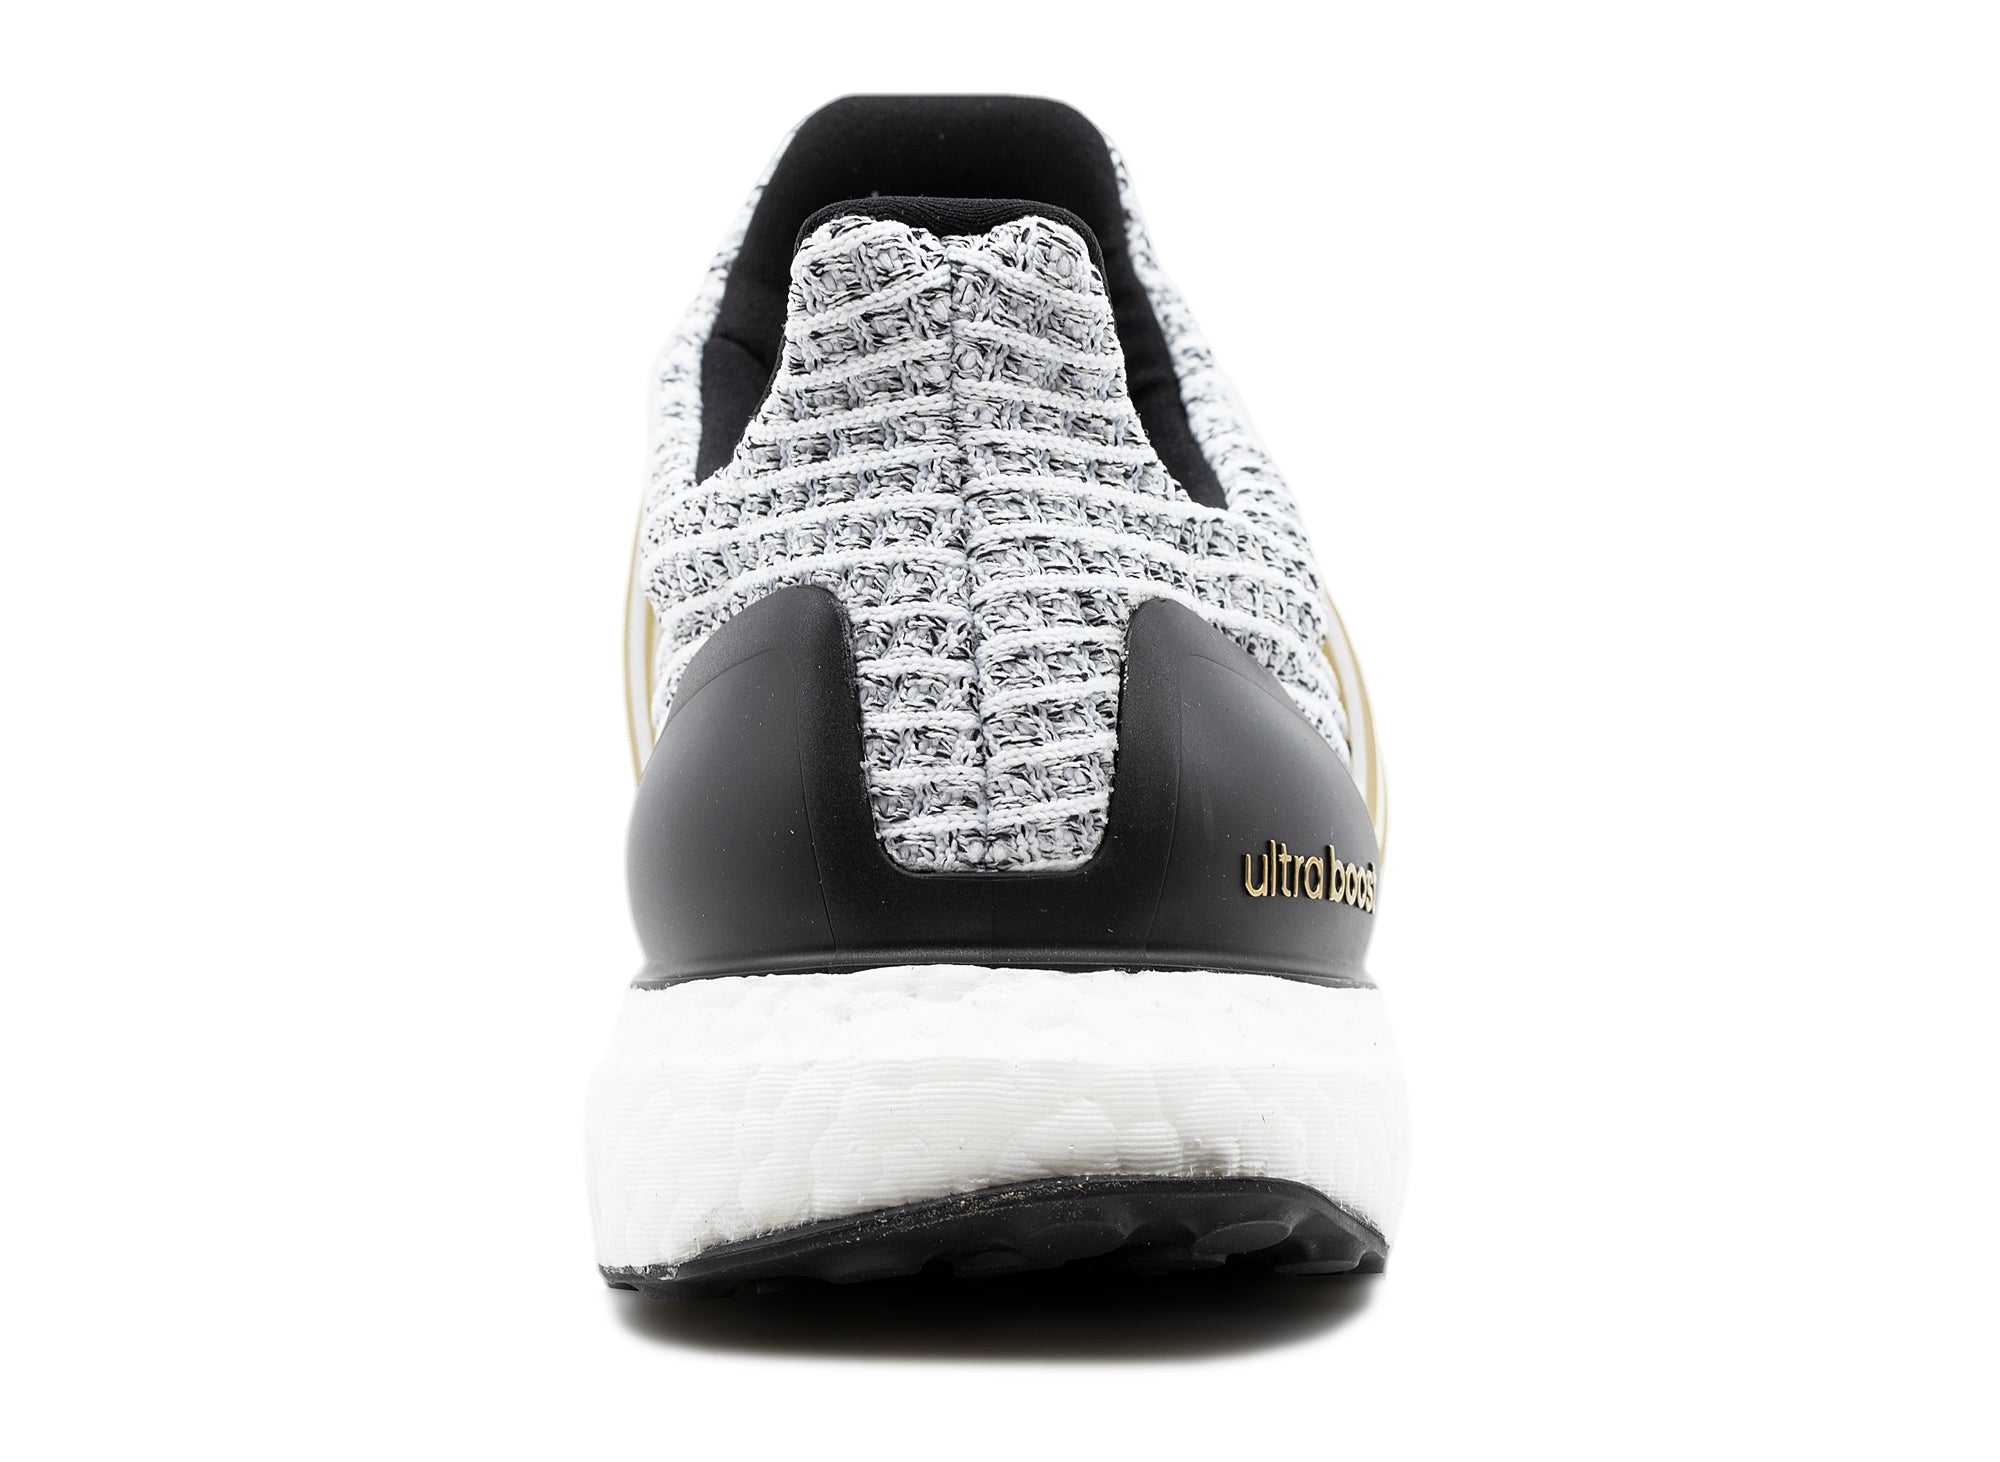 Adidas UltraBoost 'White Gold Metallic' - Oneness Boutique